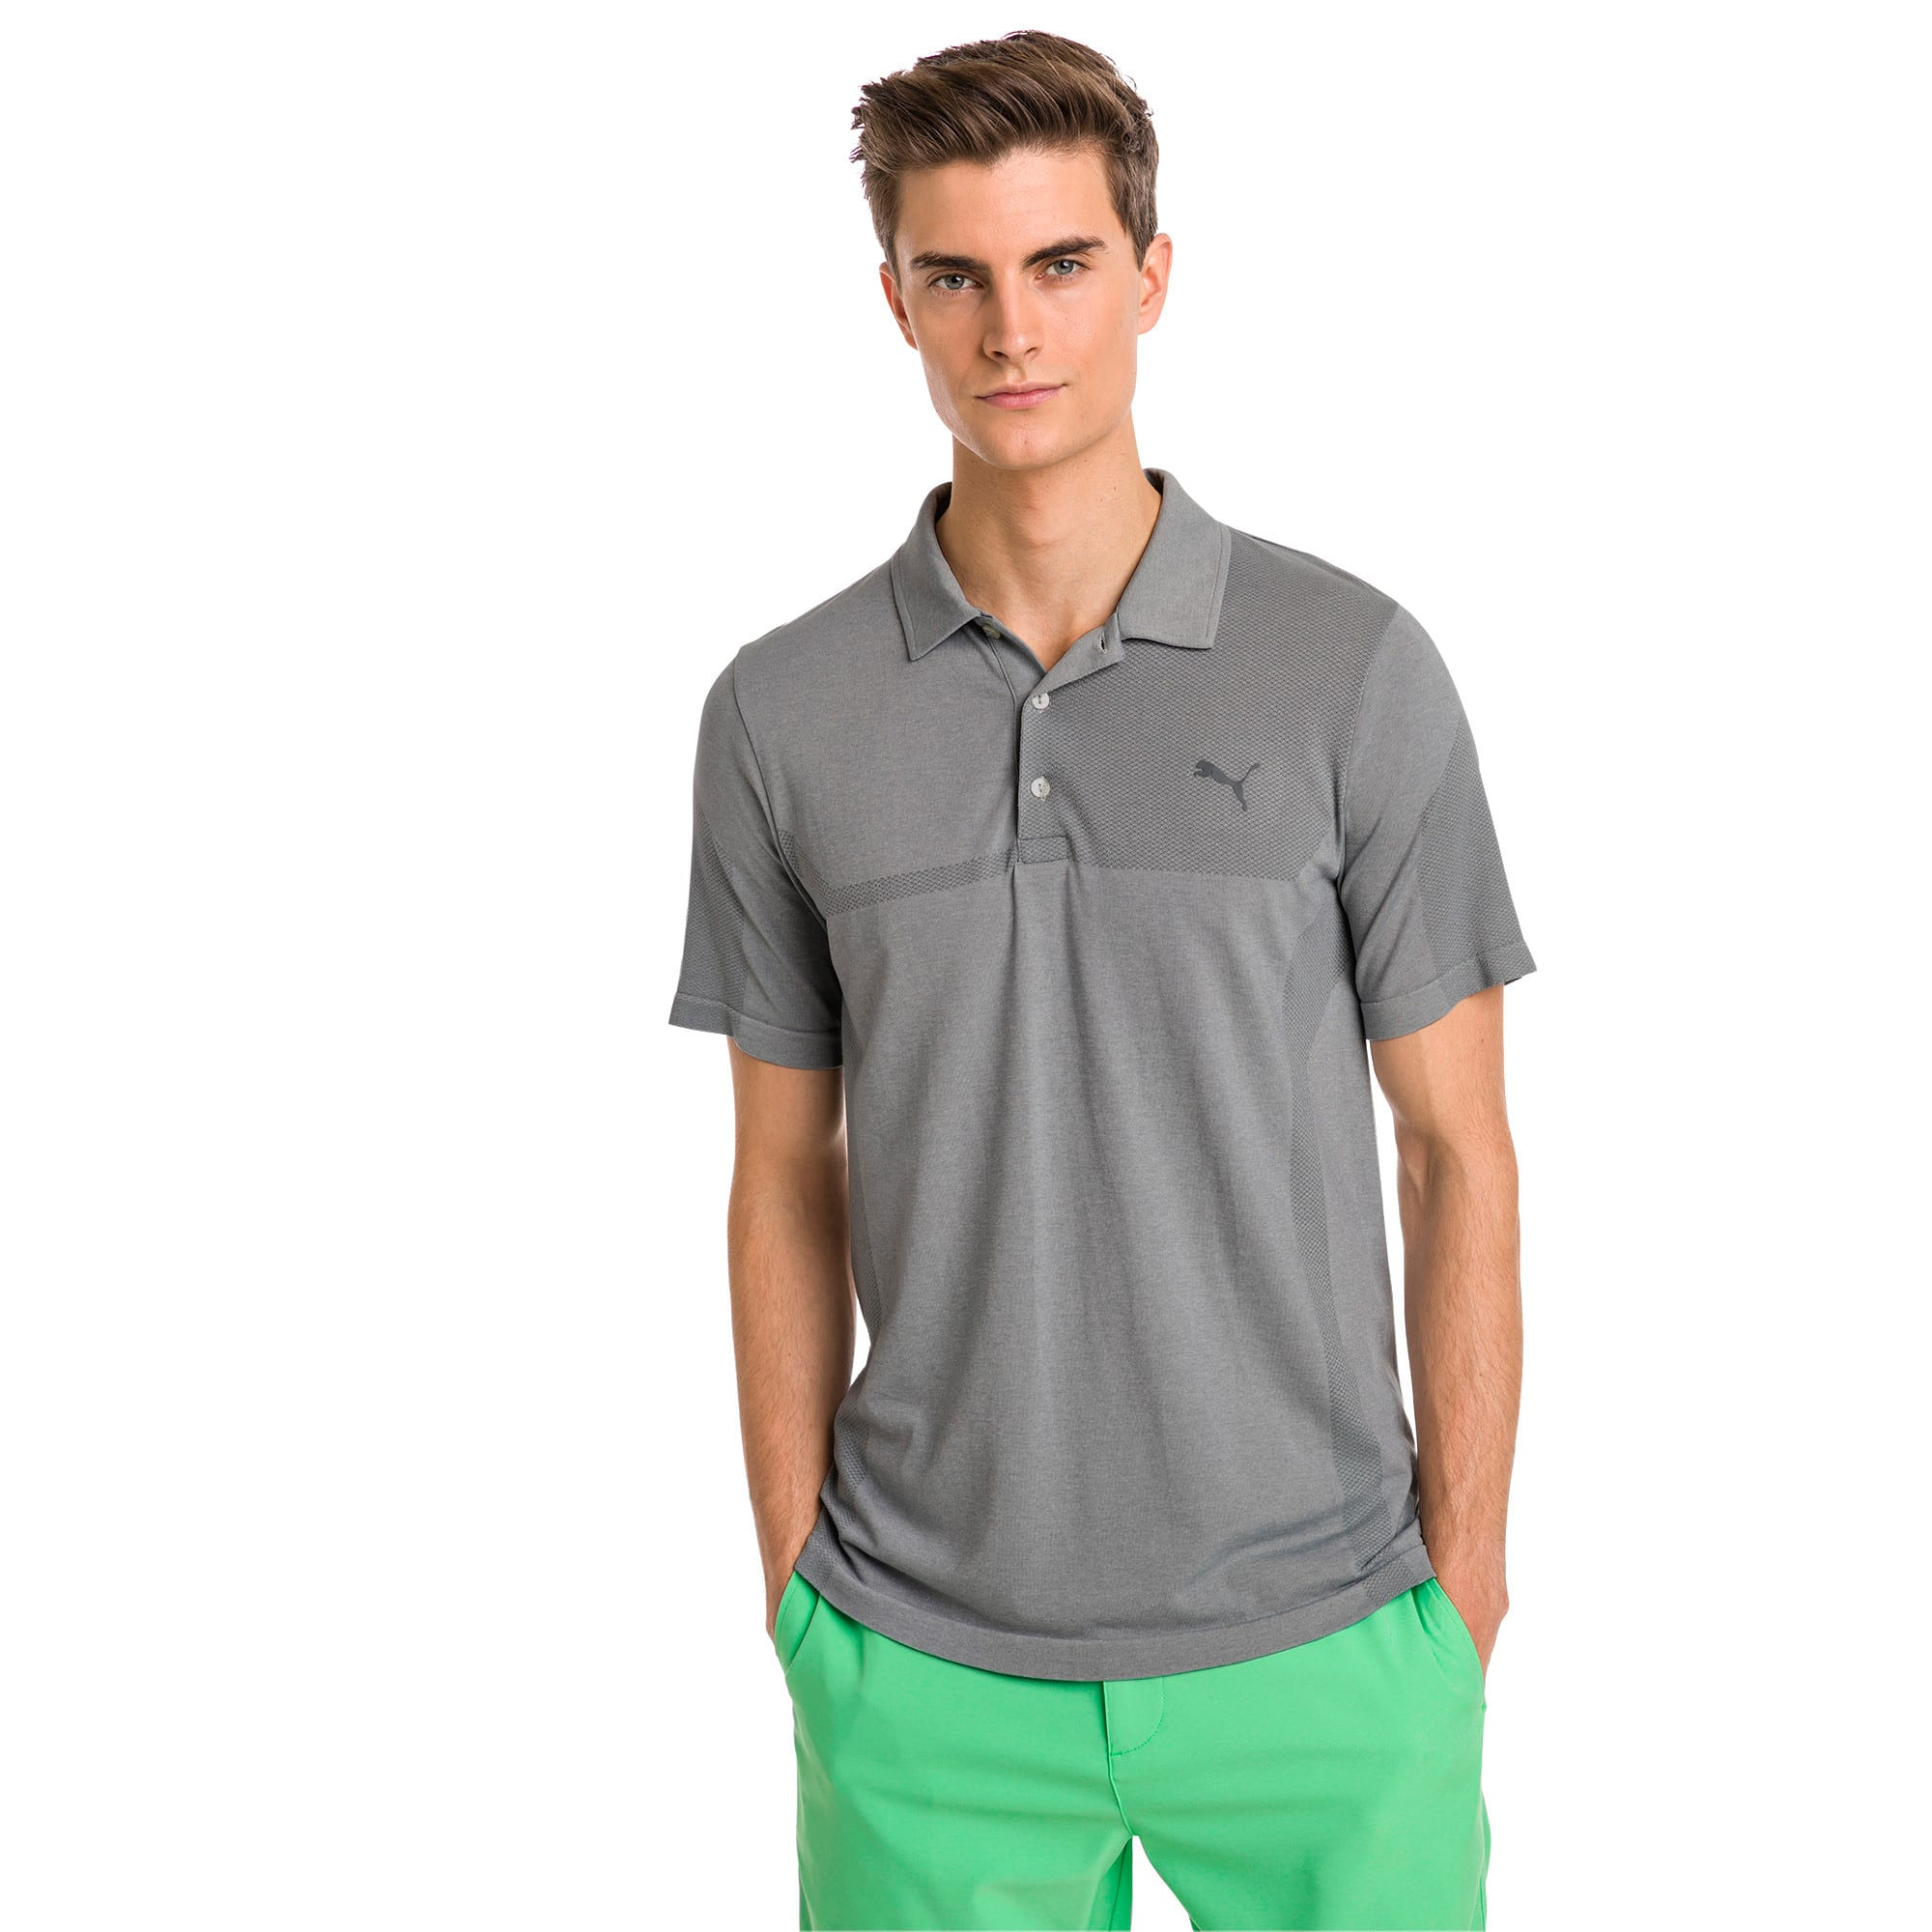 evoKNIT Breakers Men's Golf Polo, Quarry Heather, large